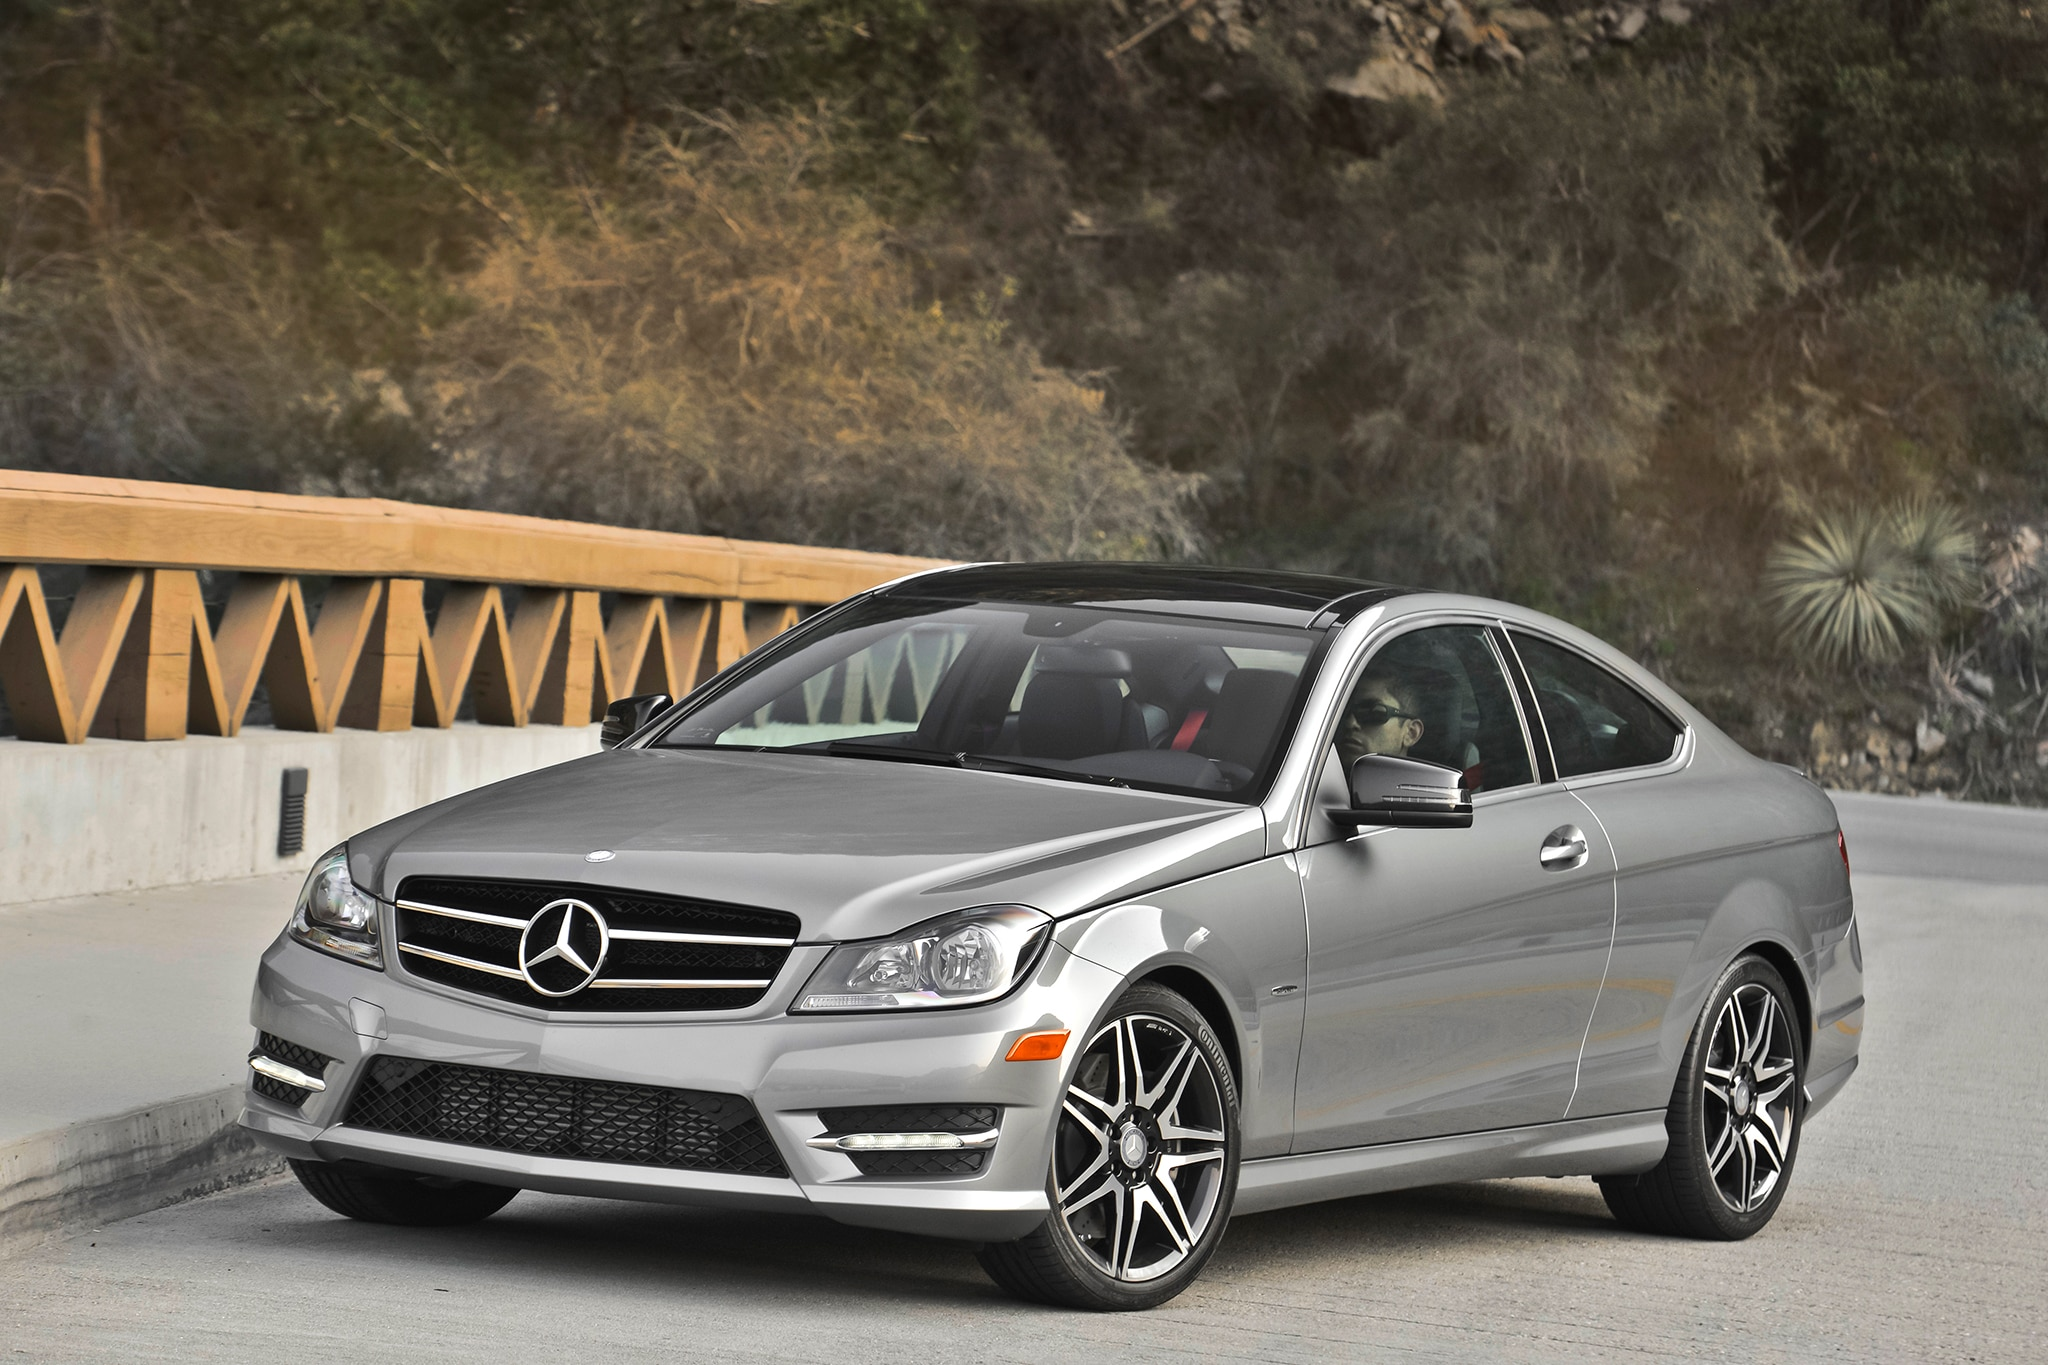 2013 14 mercedes benz c300 4matic fuel economy revised by epa for Mercedes benz c250 sedan